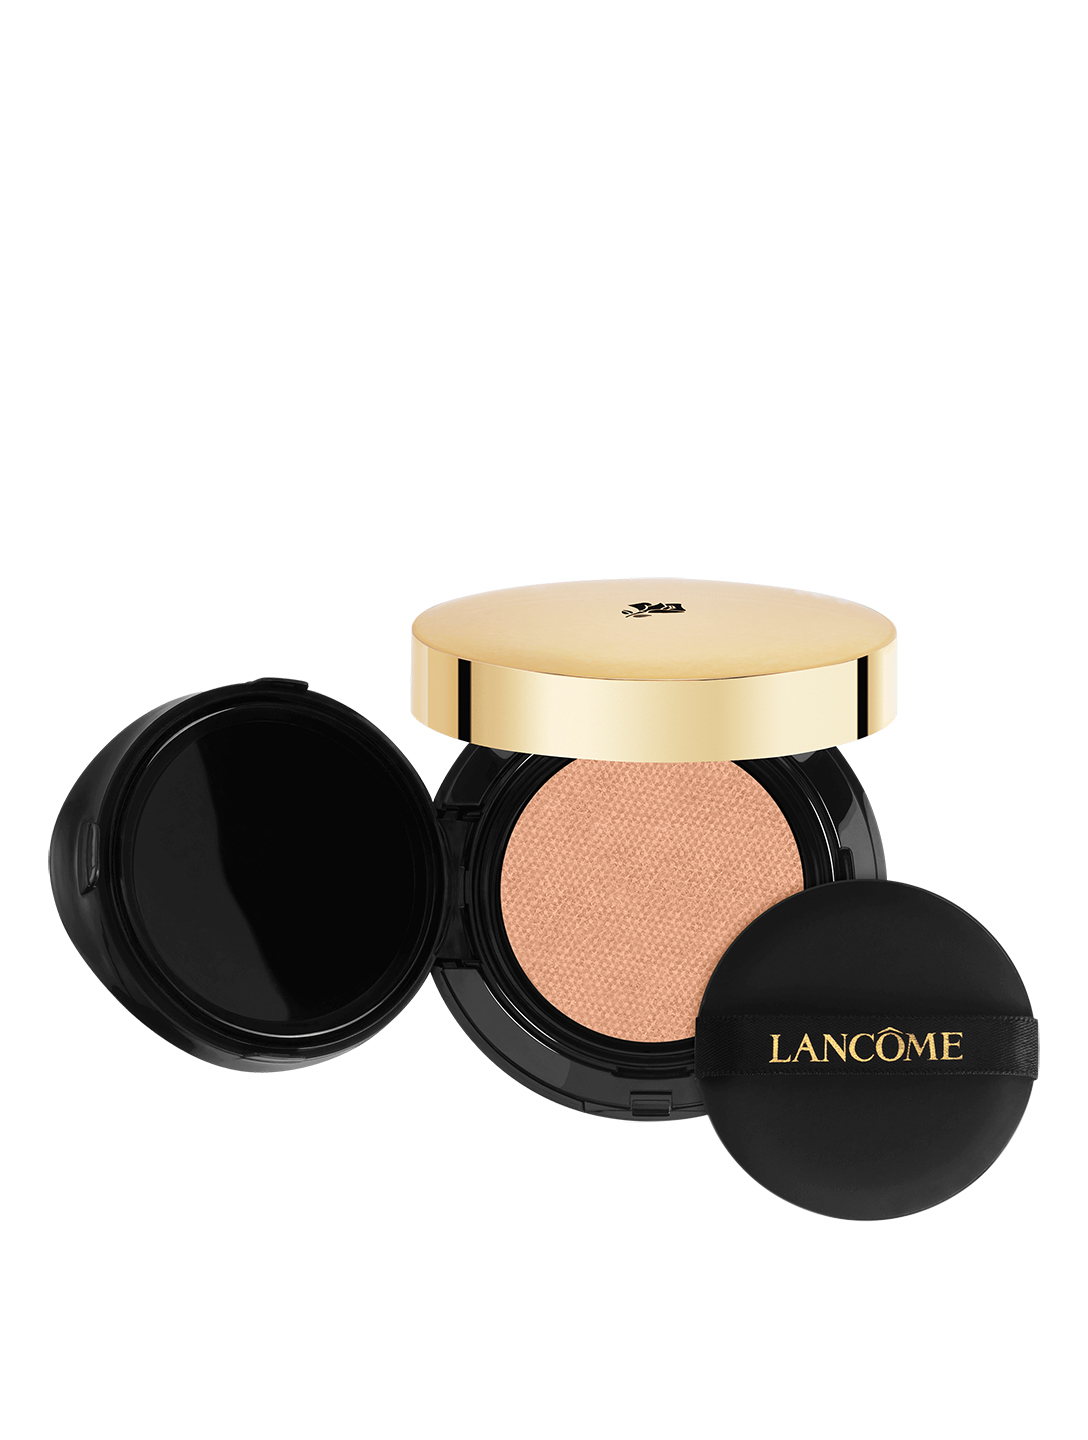 LANCÔME Teint Idole Ultra Cushion Compact Foundation Beauty Neutral